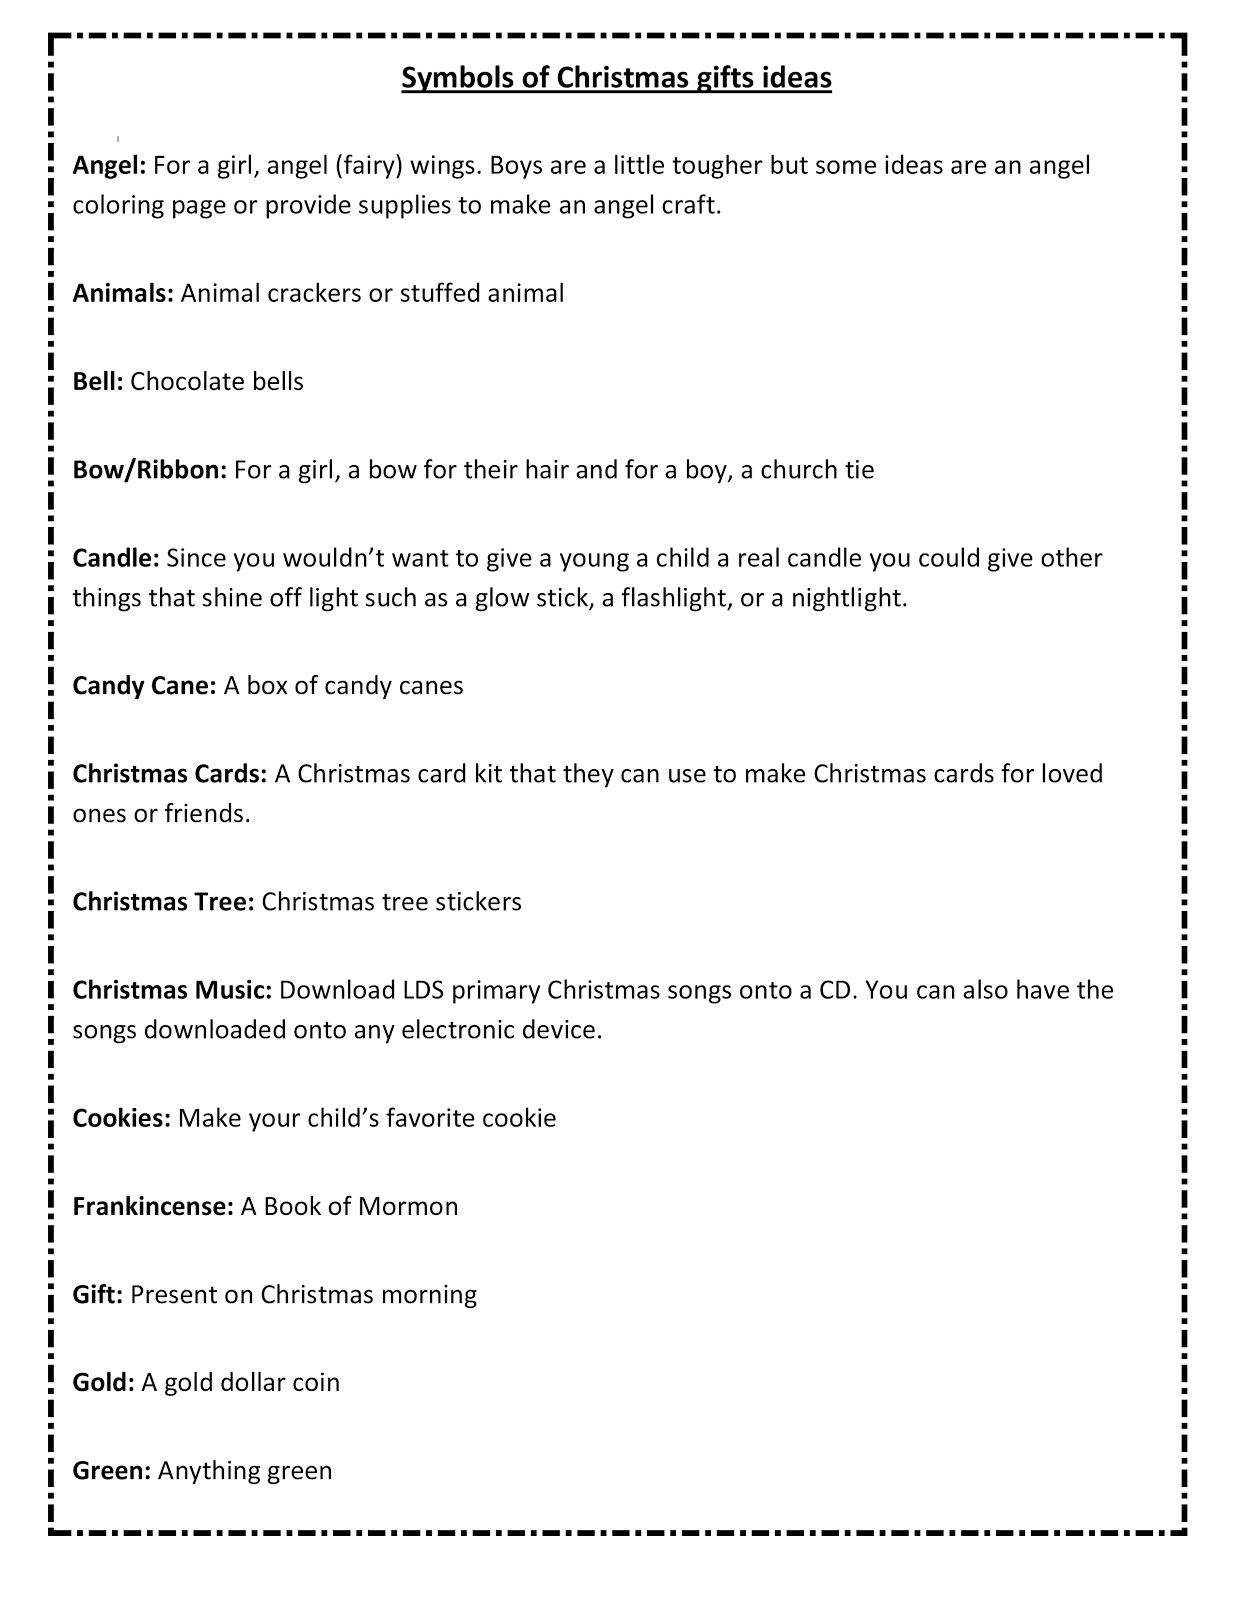 Ourhomecreations Free Printable With 25 Days Of Christmas Symbols